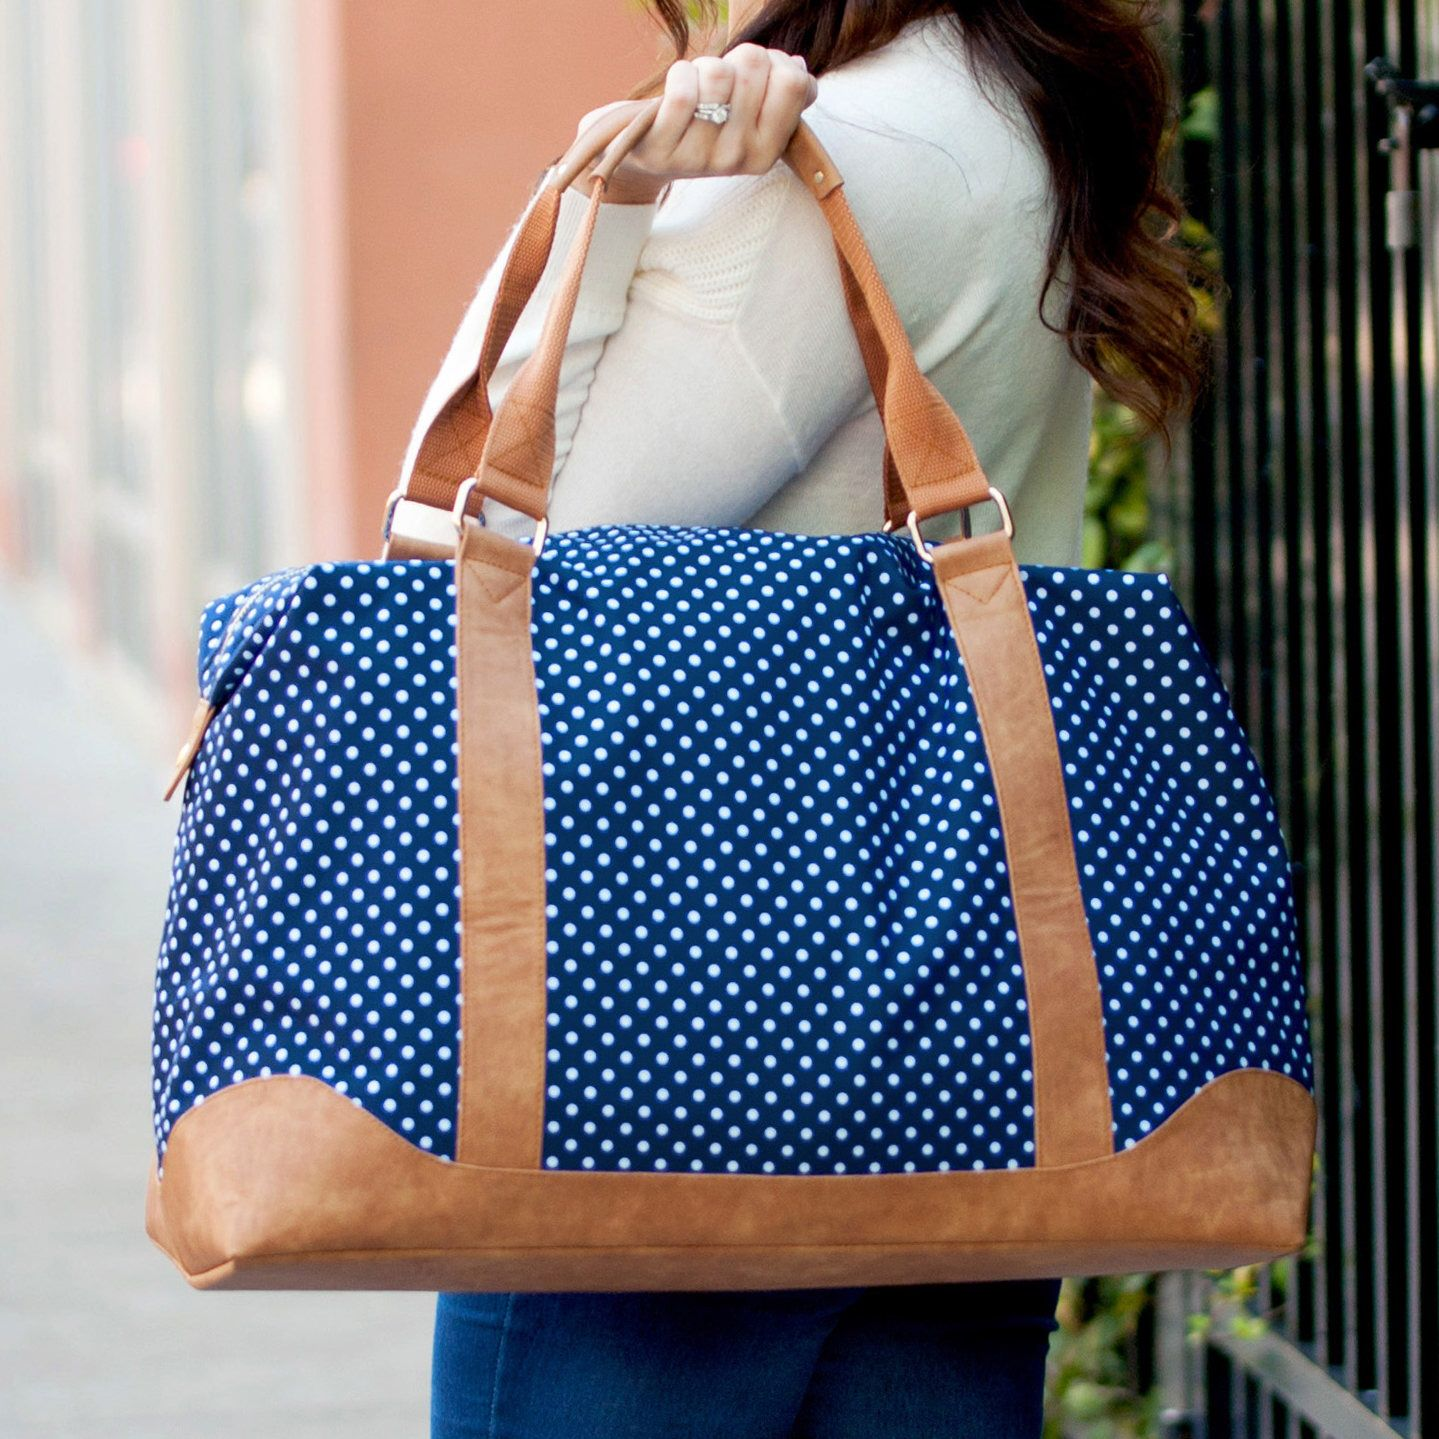 61f634ef0af Pin by Kim Mancini on Products I Love | Bags